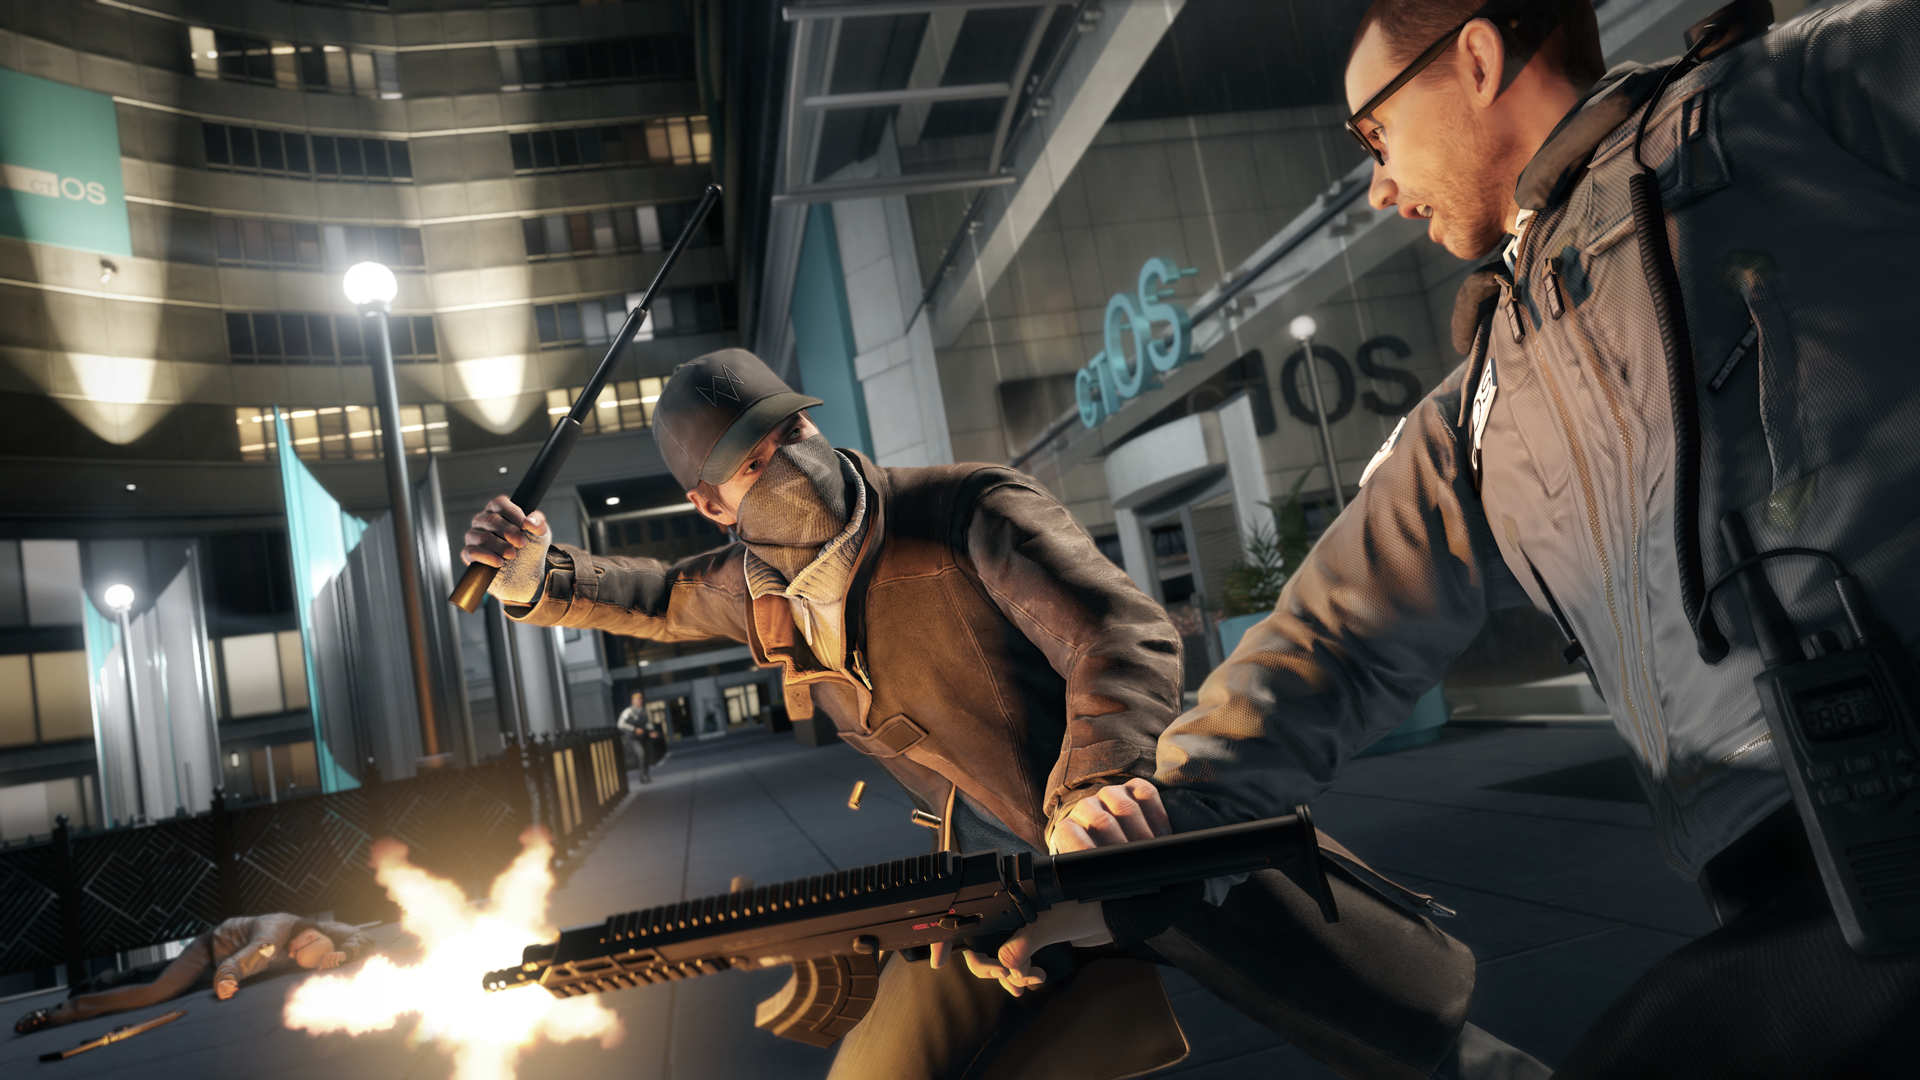 watch_dogs_ctos_takedown